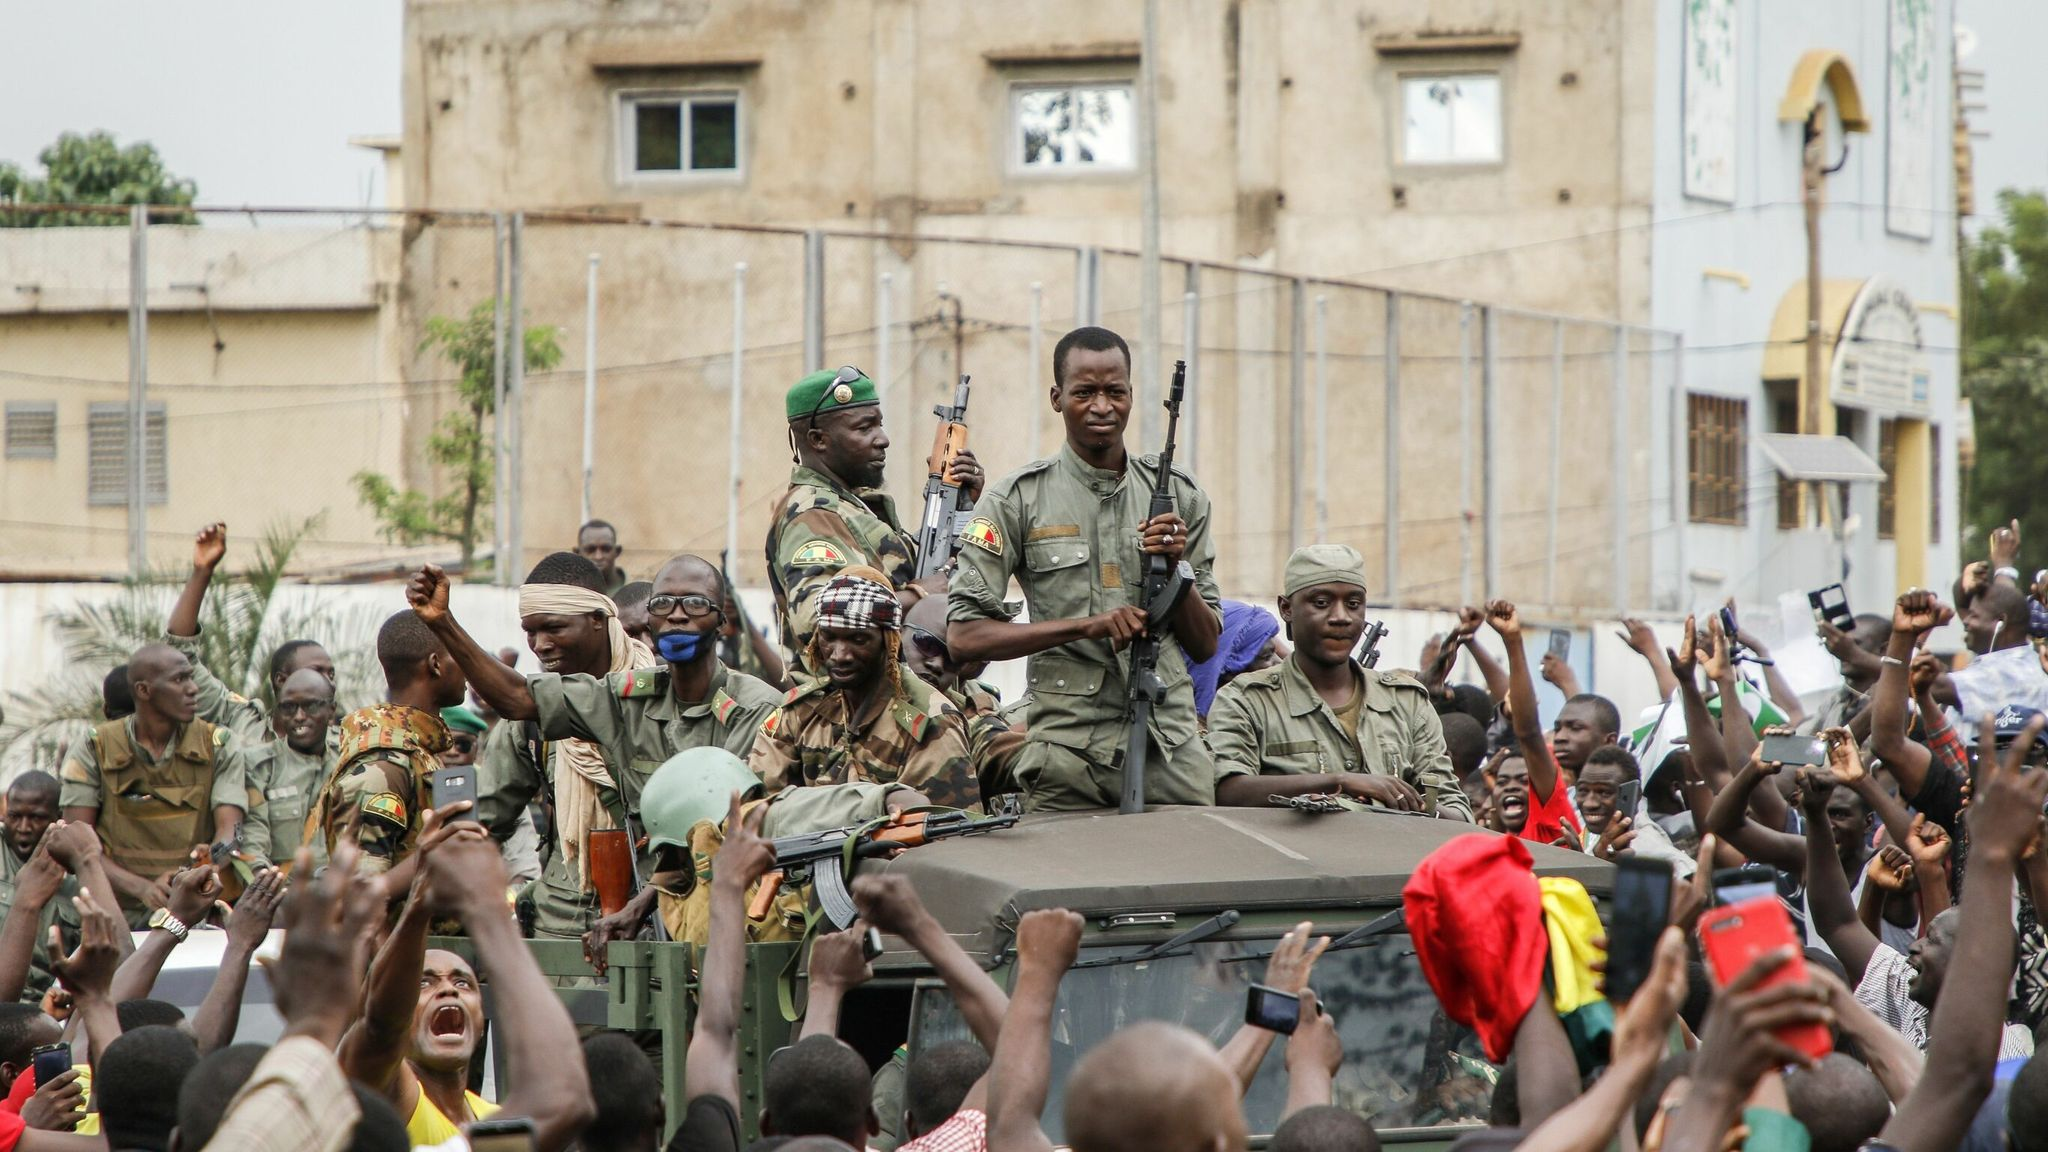 UN Security Council strongly condemns military coup in Mali